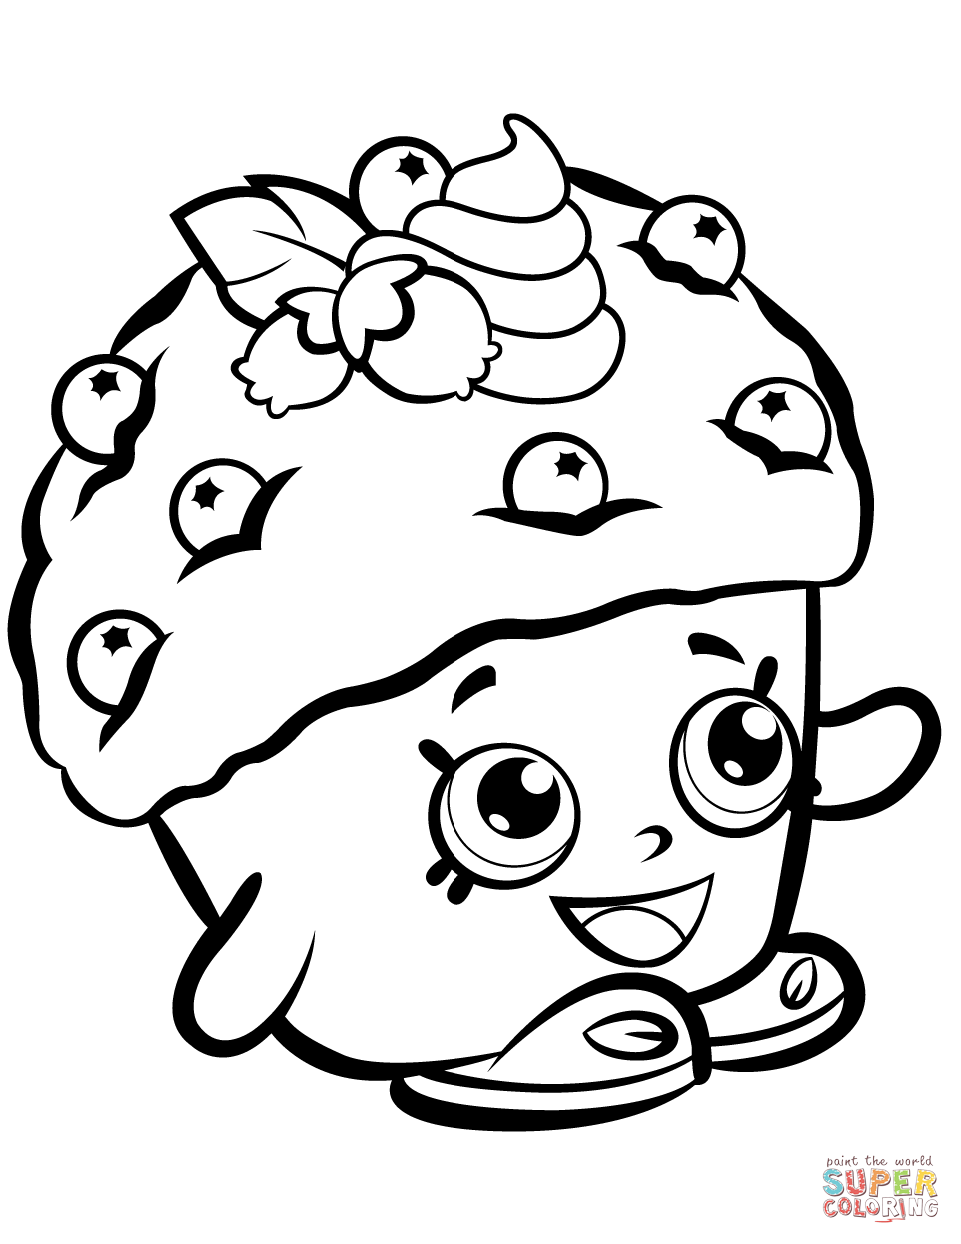 961x1244 Shopkins Season 1 Coloring Pages Free Coloring Pages